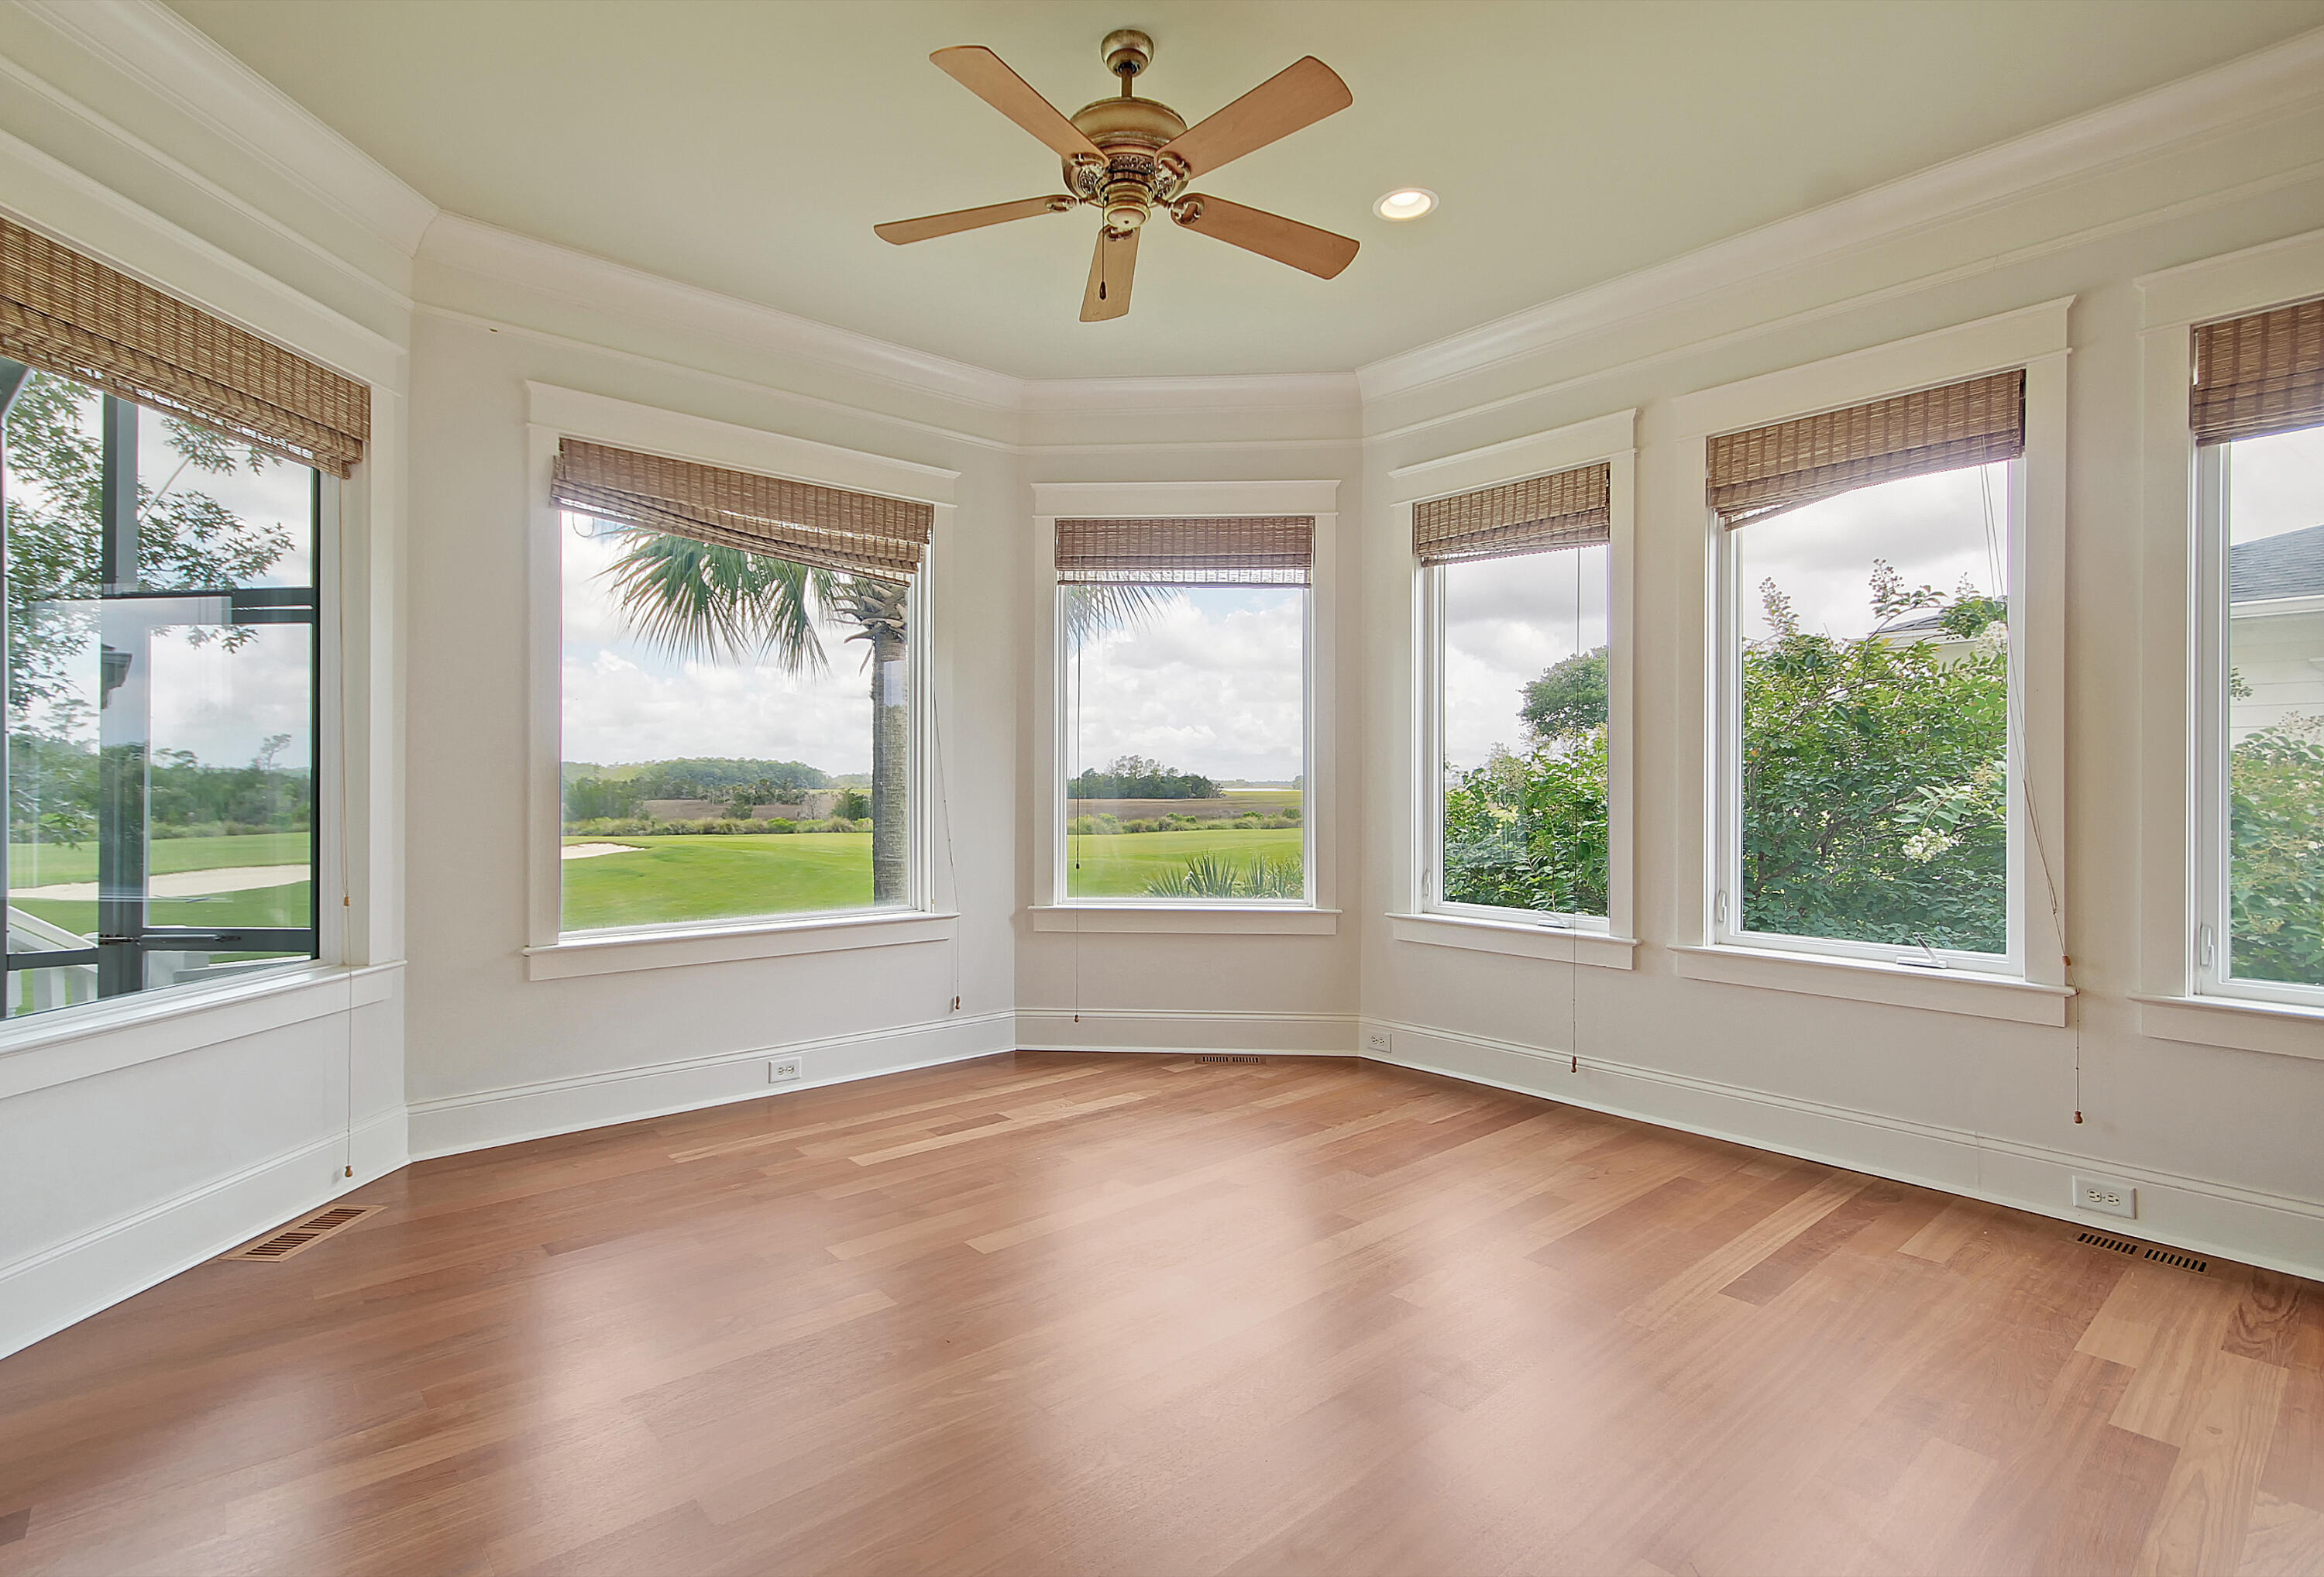 Rivertowne Country Club Homes For Sale - 1632 Rivertowne Country Club, Mount Pleasant, SC - 51